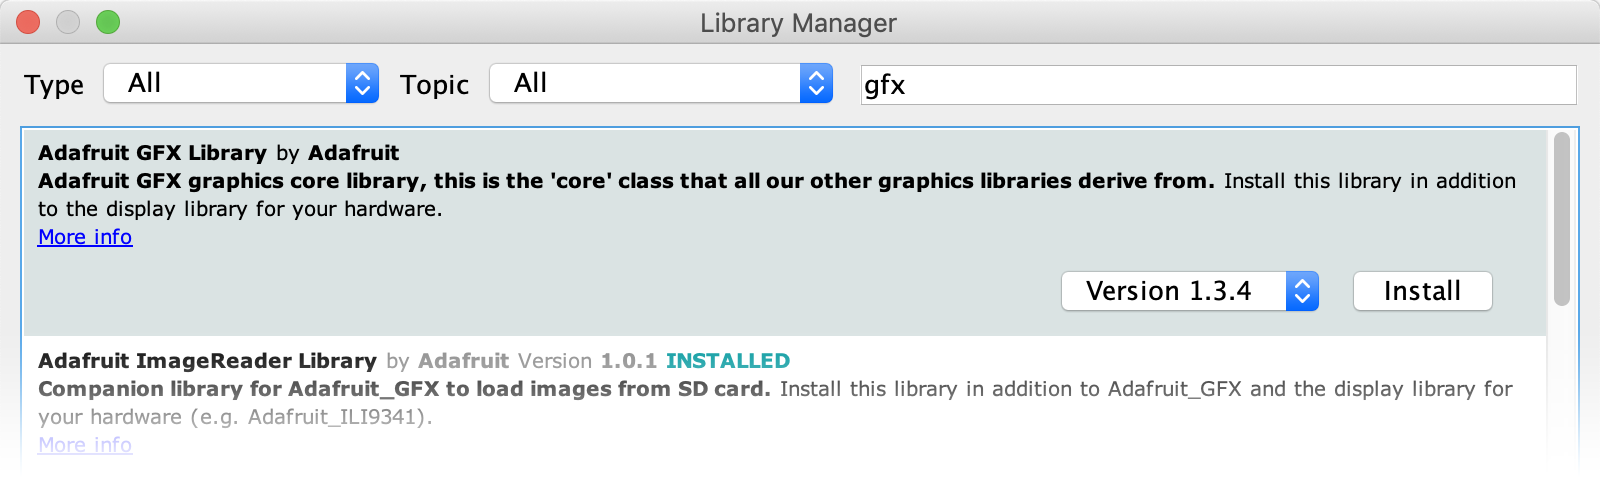 adafruit_products_arduino_compatibles_adafruit-gfx-library-manager.png